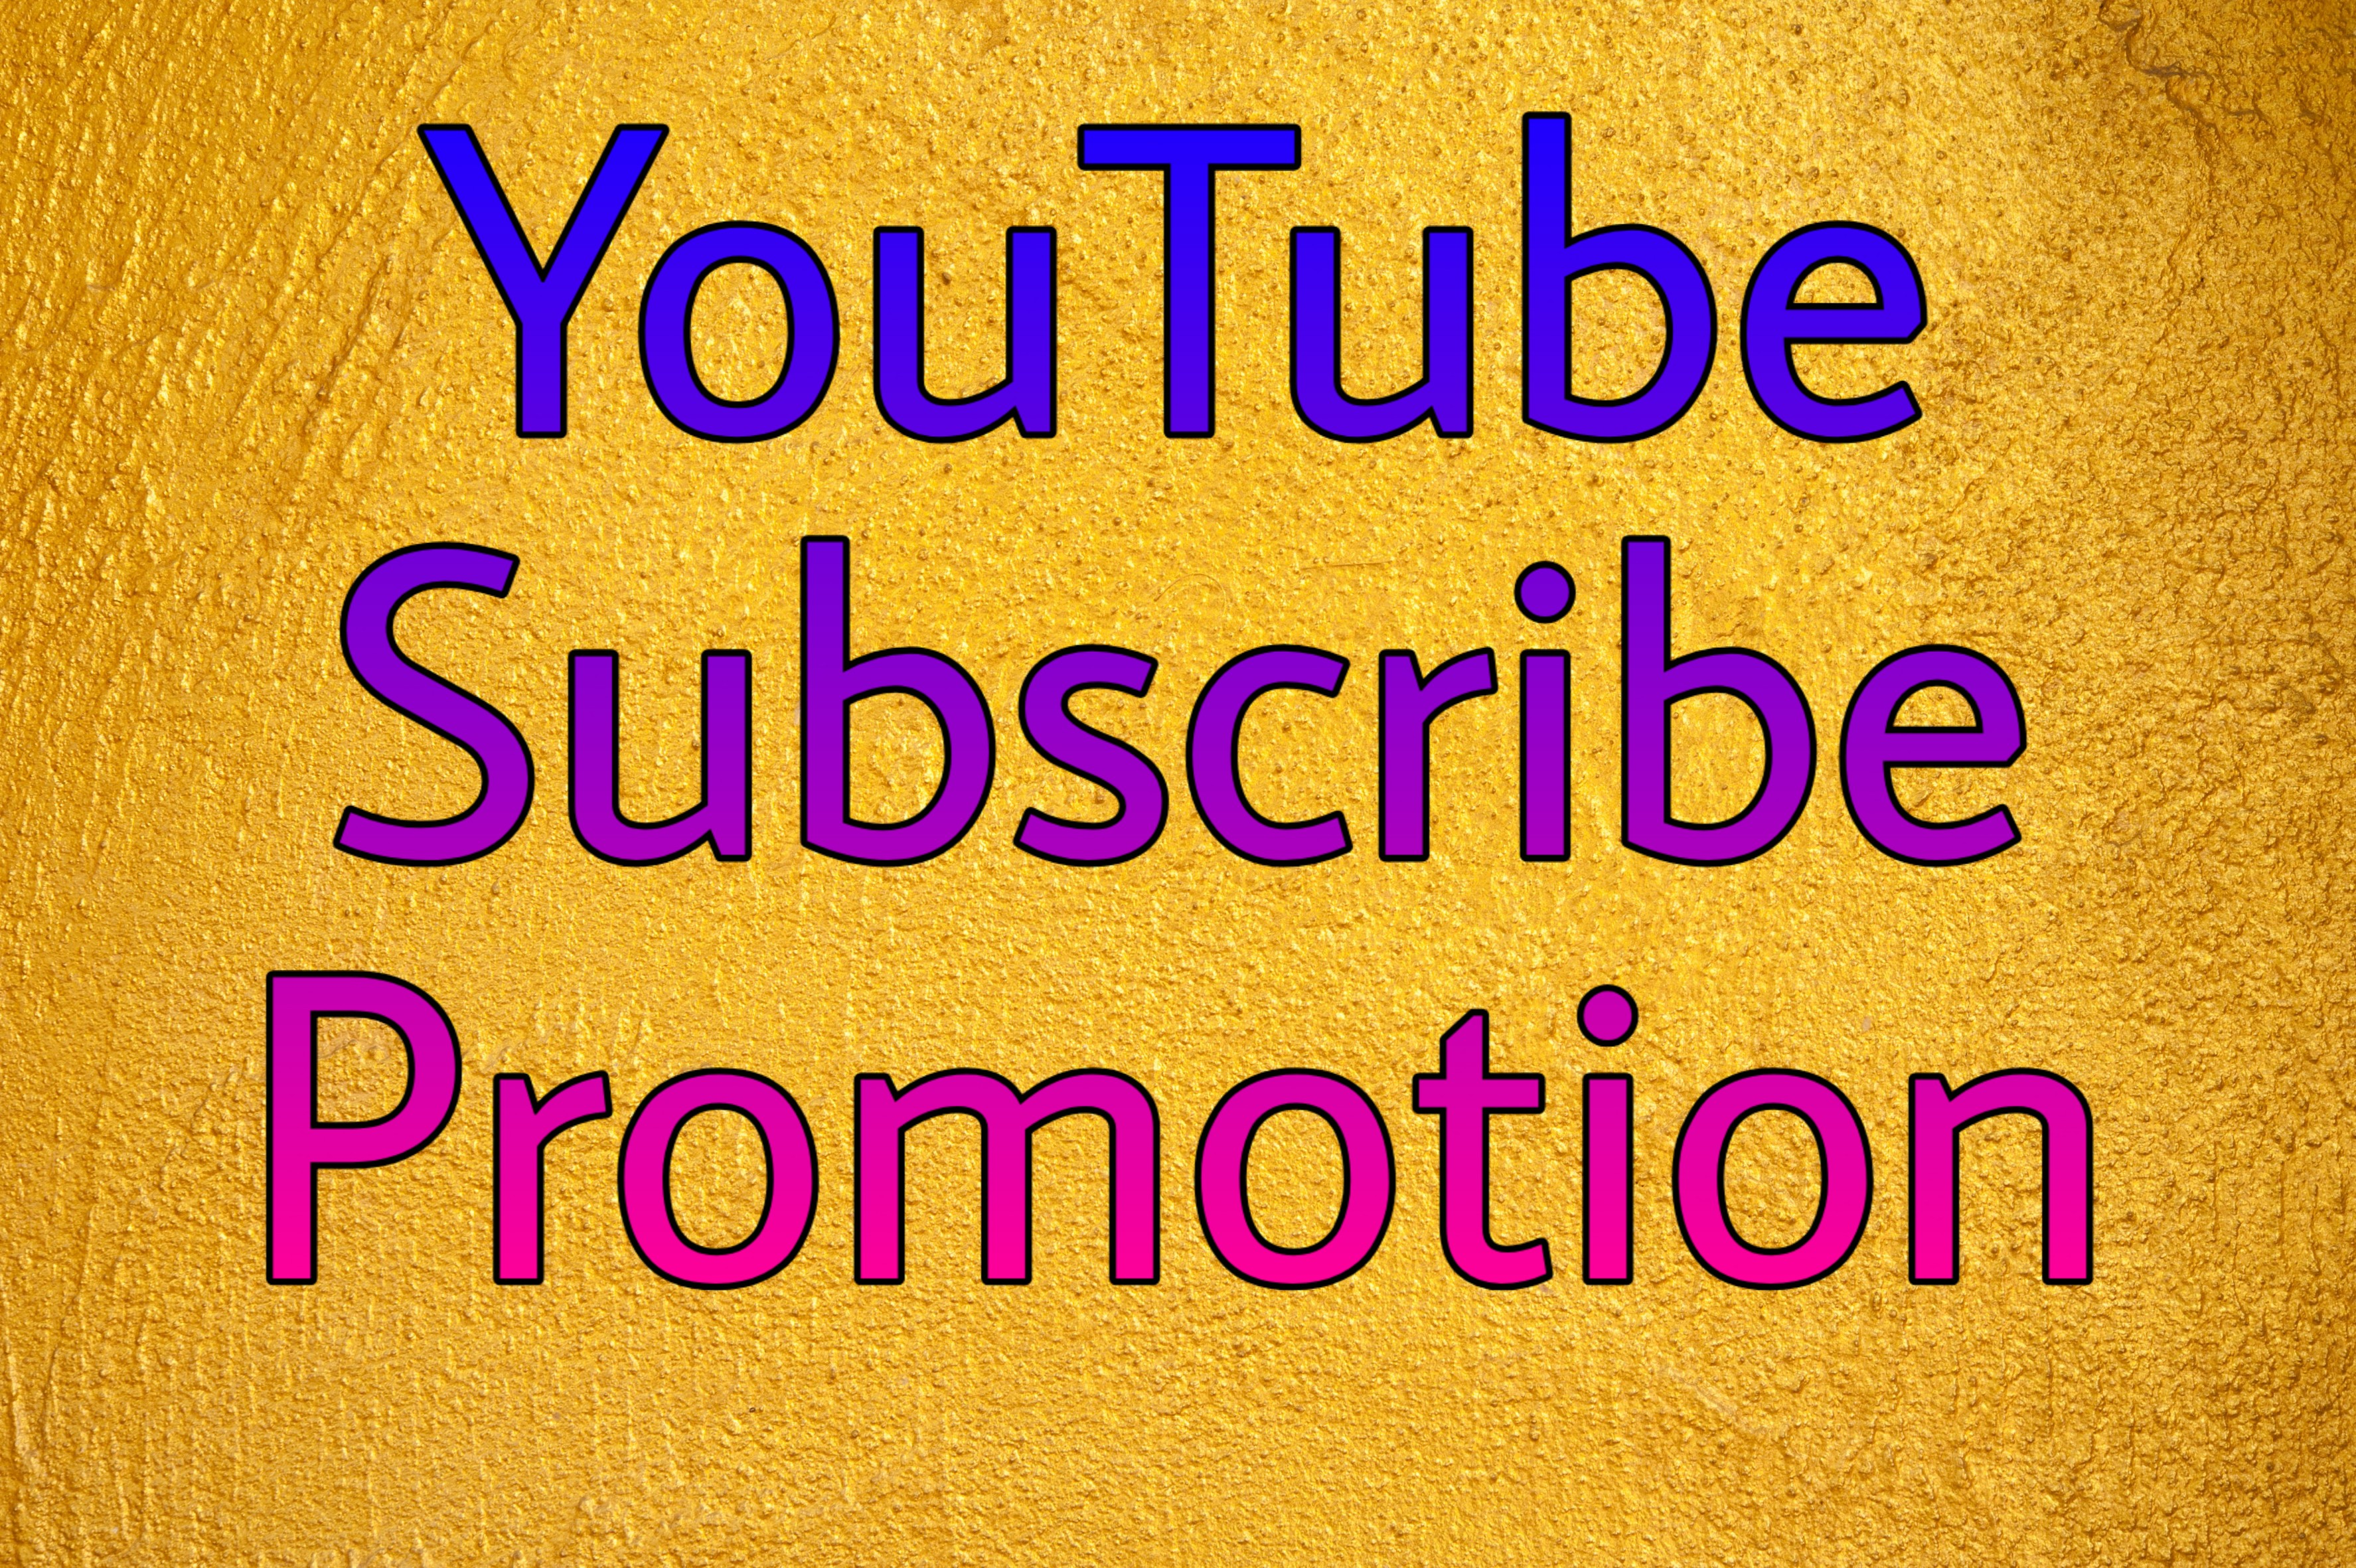 Real YouTube promotion by social media marketing